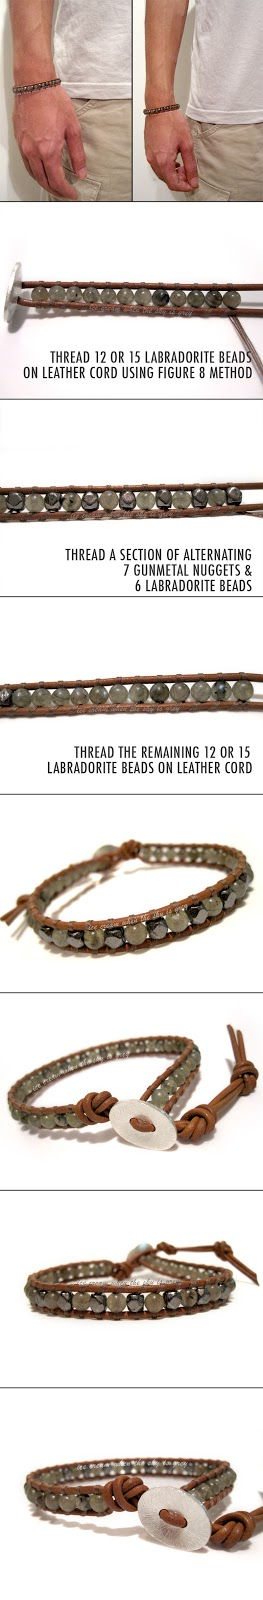 DIY Bracelet: Valentine's Gift Idea For Men - Single Wrap Gunmetal & Labradorite Mix On Natural Brown Leather